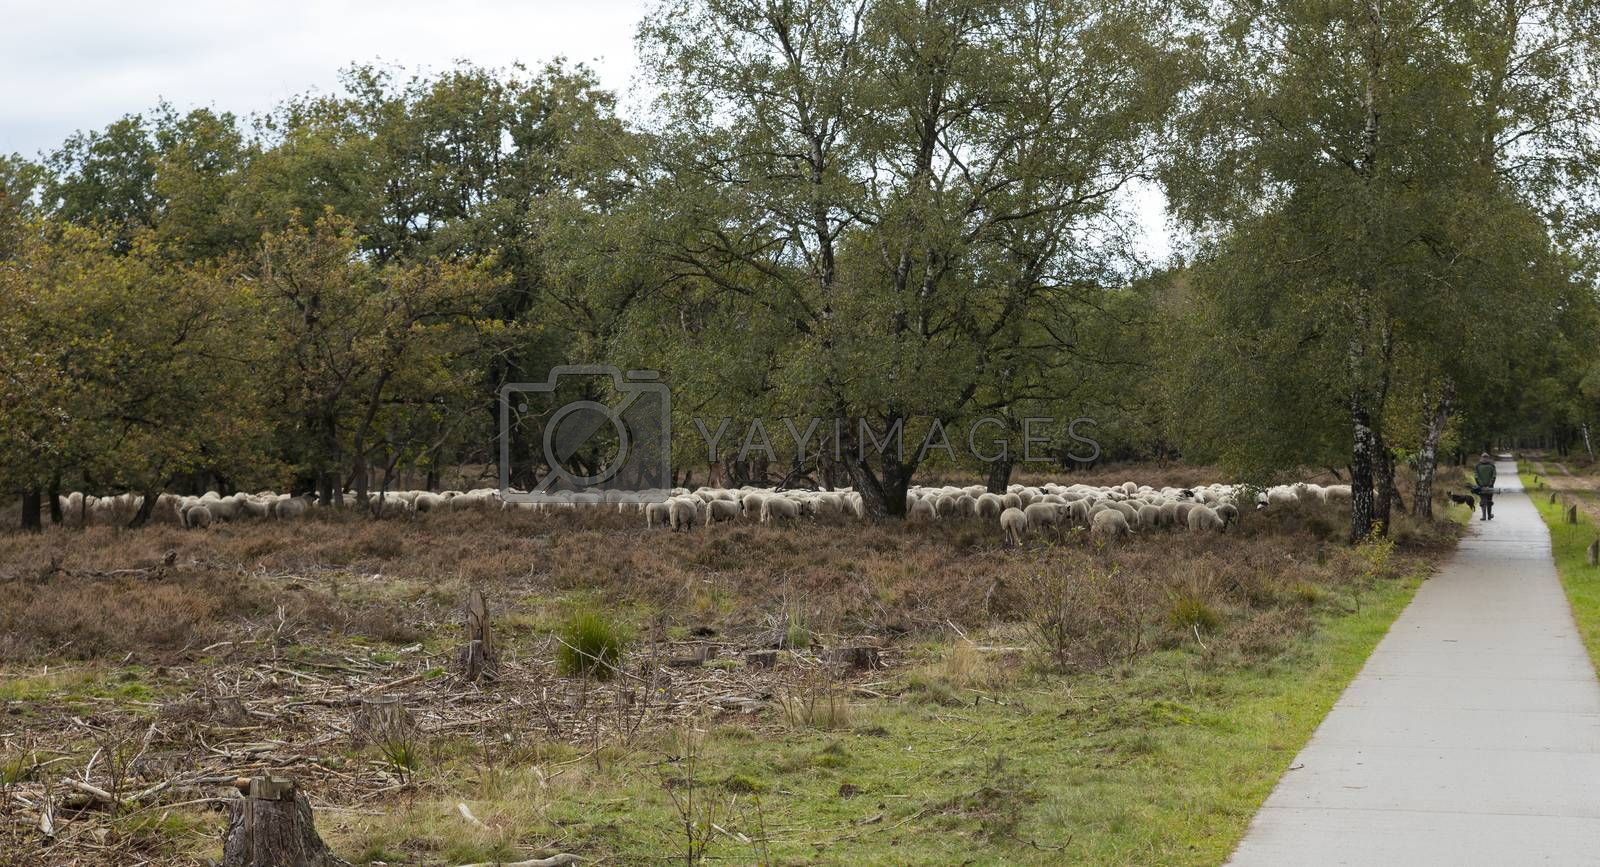 Kootwijk,holland,18-okt-2020:Shepard with flock of sheep grazing in national park de veluwe